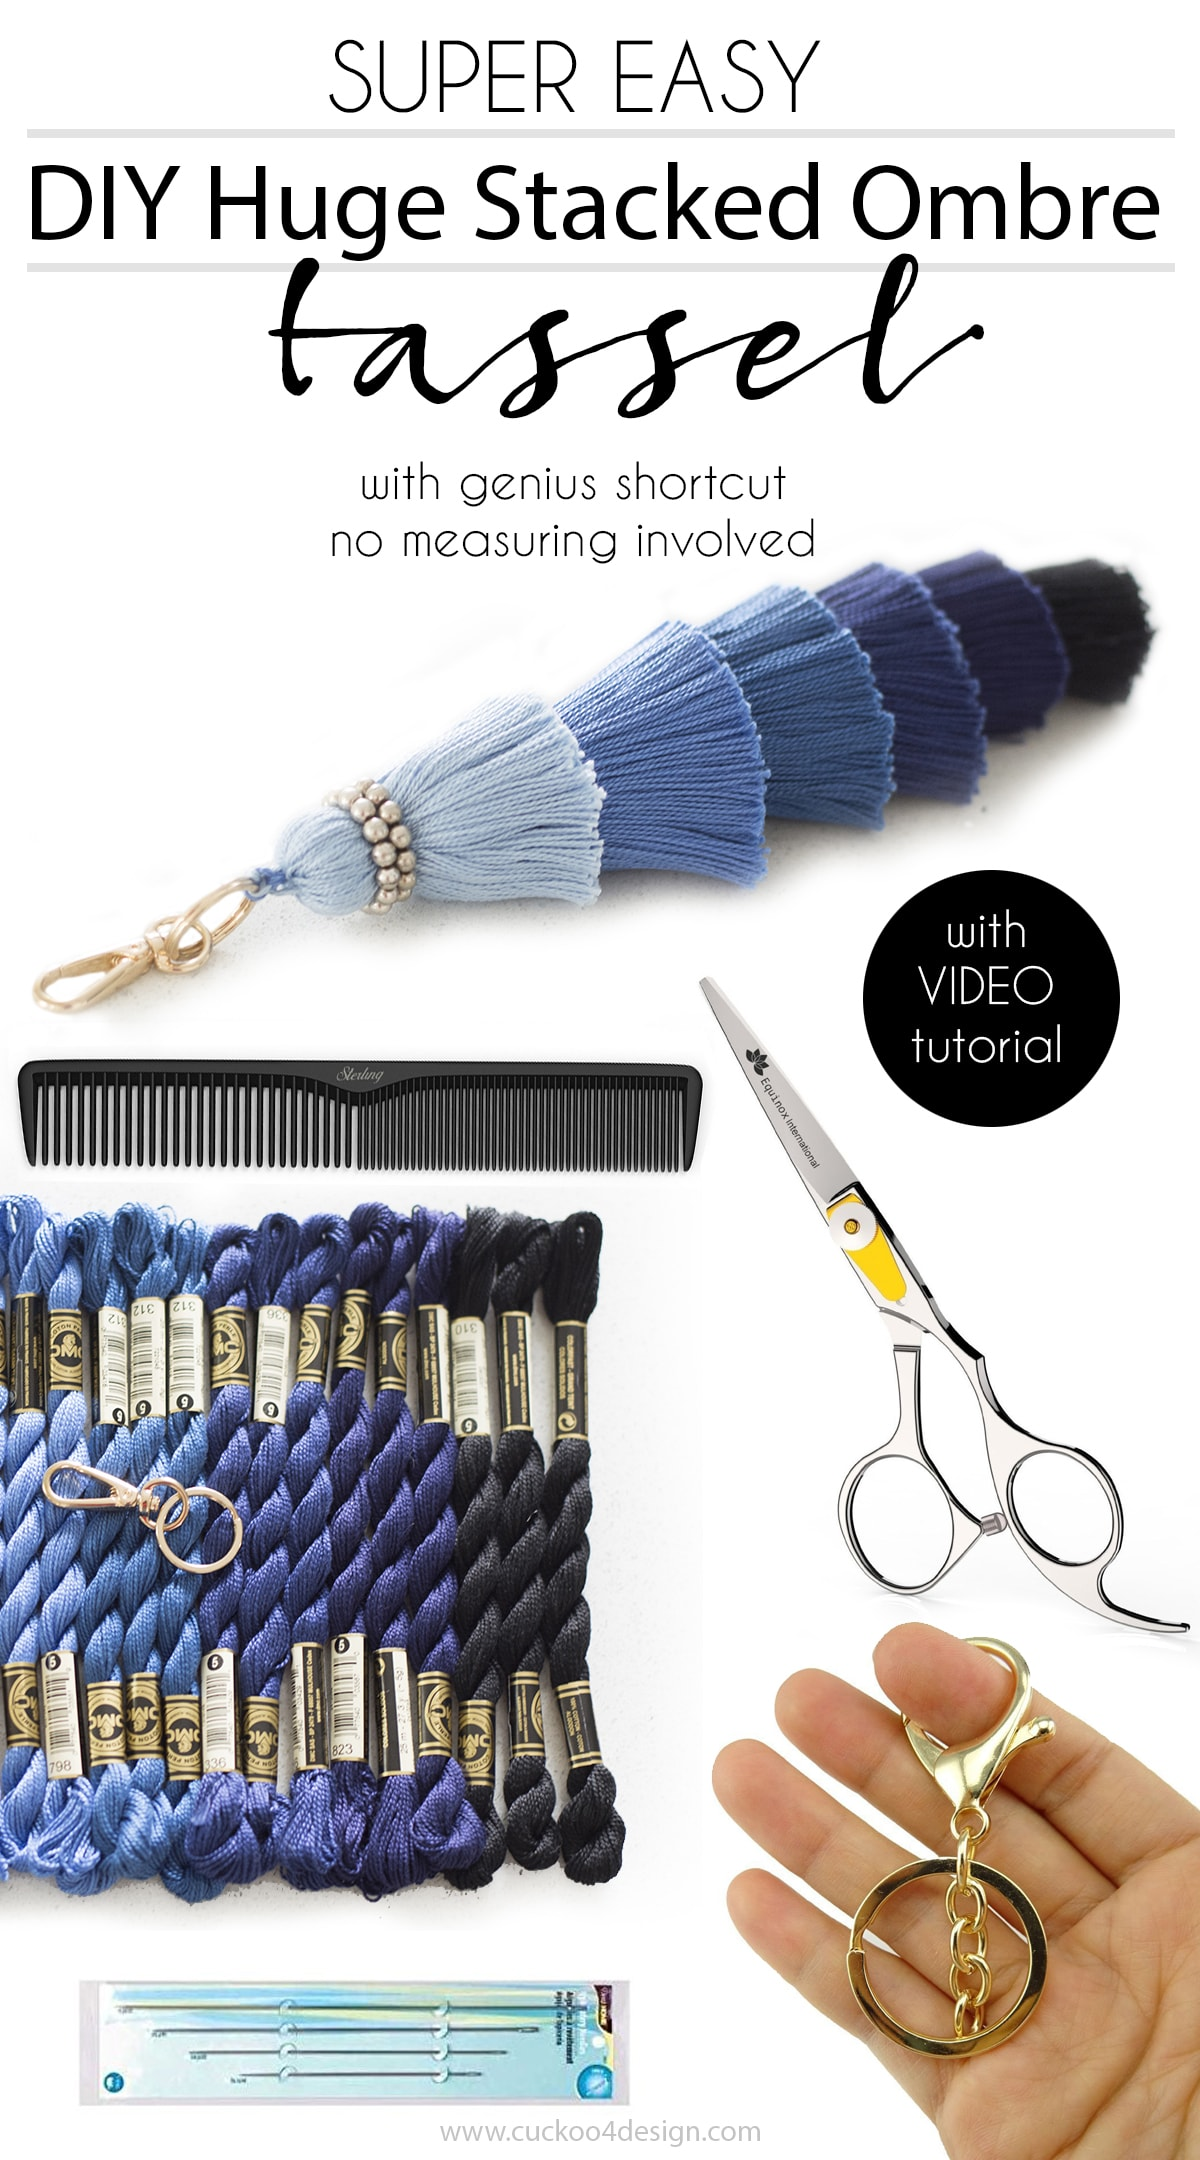 super easy DIY huge stacked ombre tassel with genius shortcut